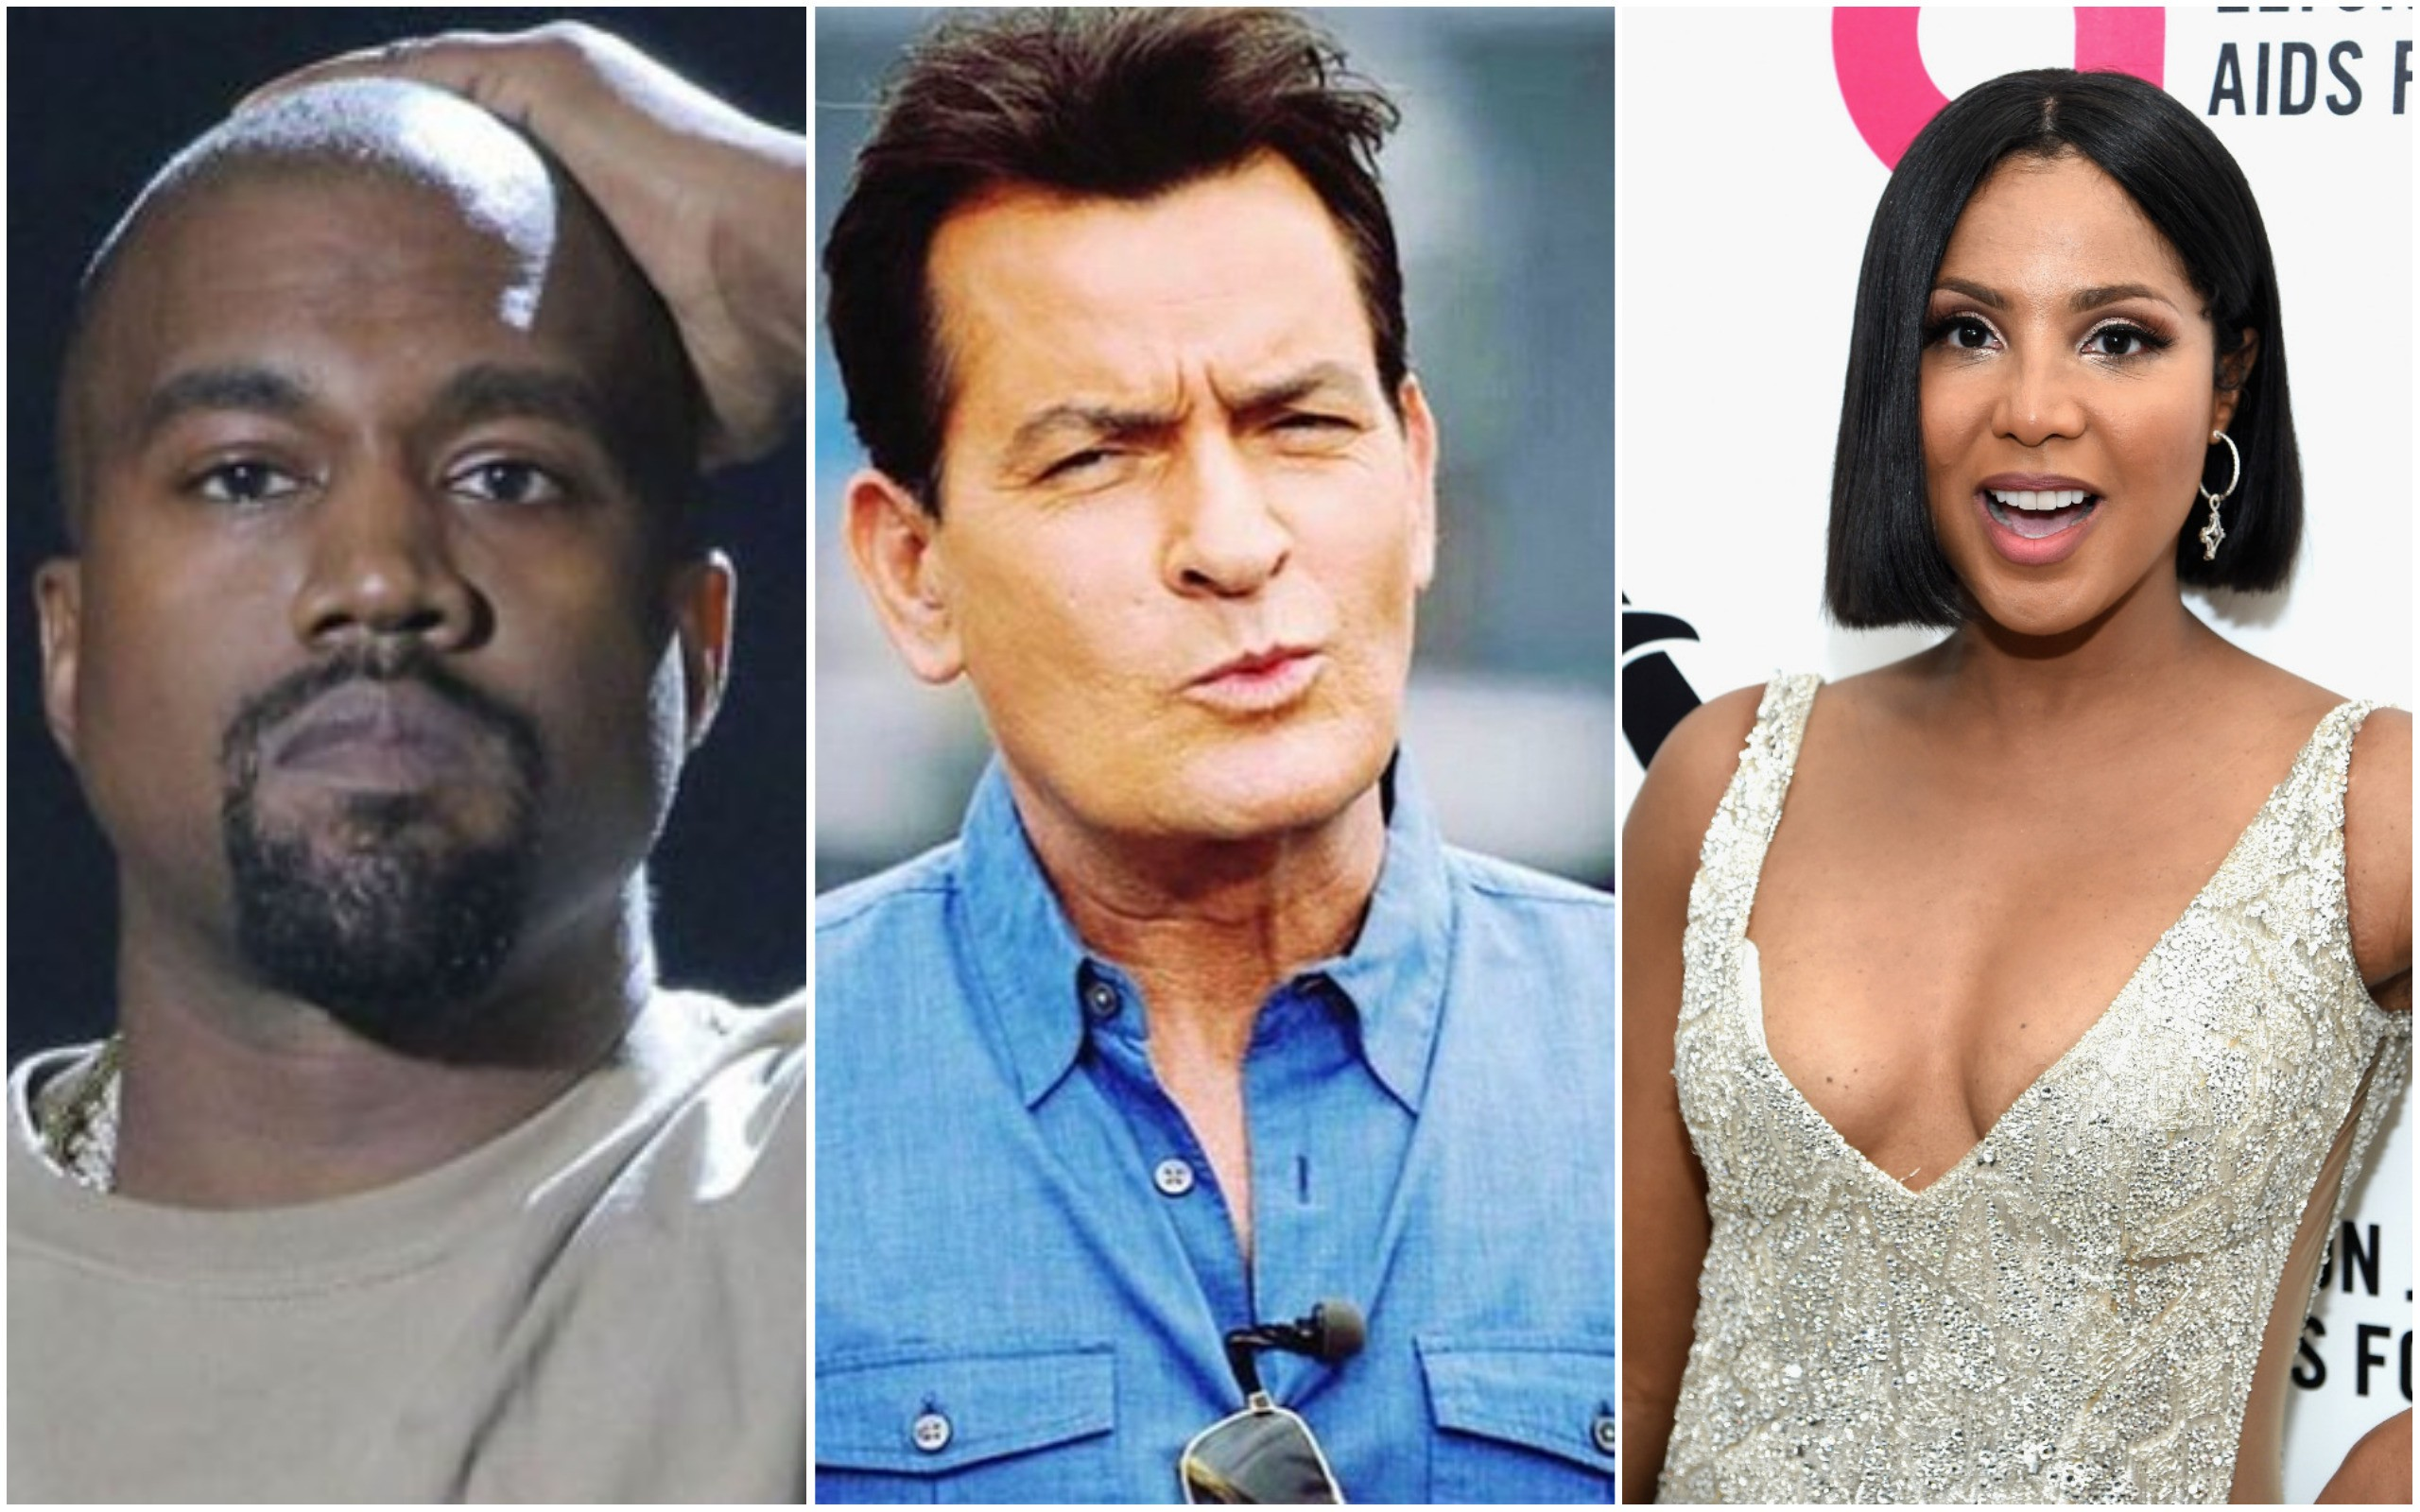 Kanye West, Charlie Sheen, Toni Braxton (Foto: Getty Images e Redes Sociais)